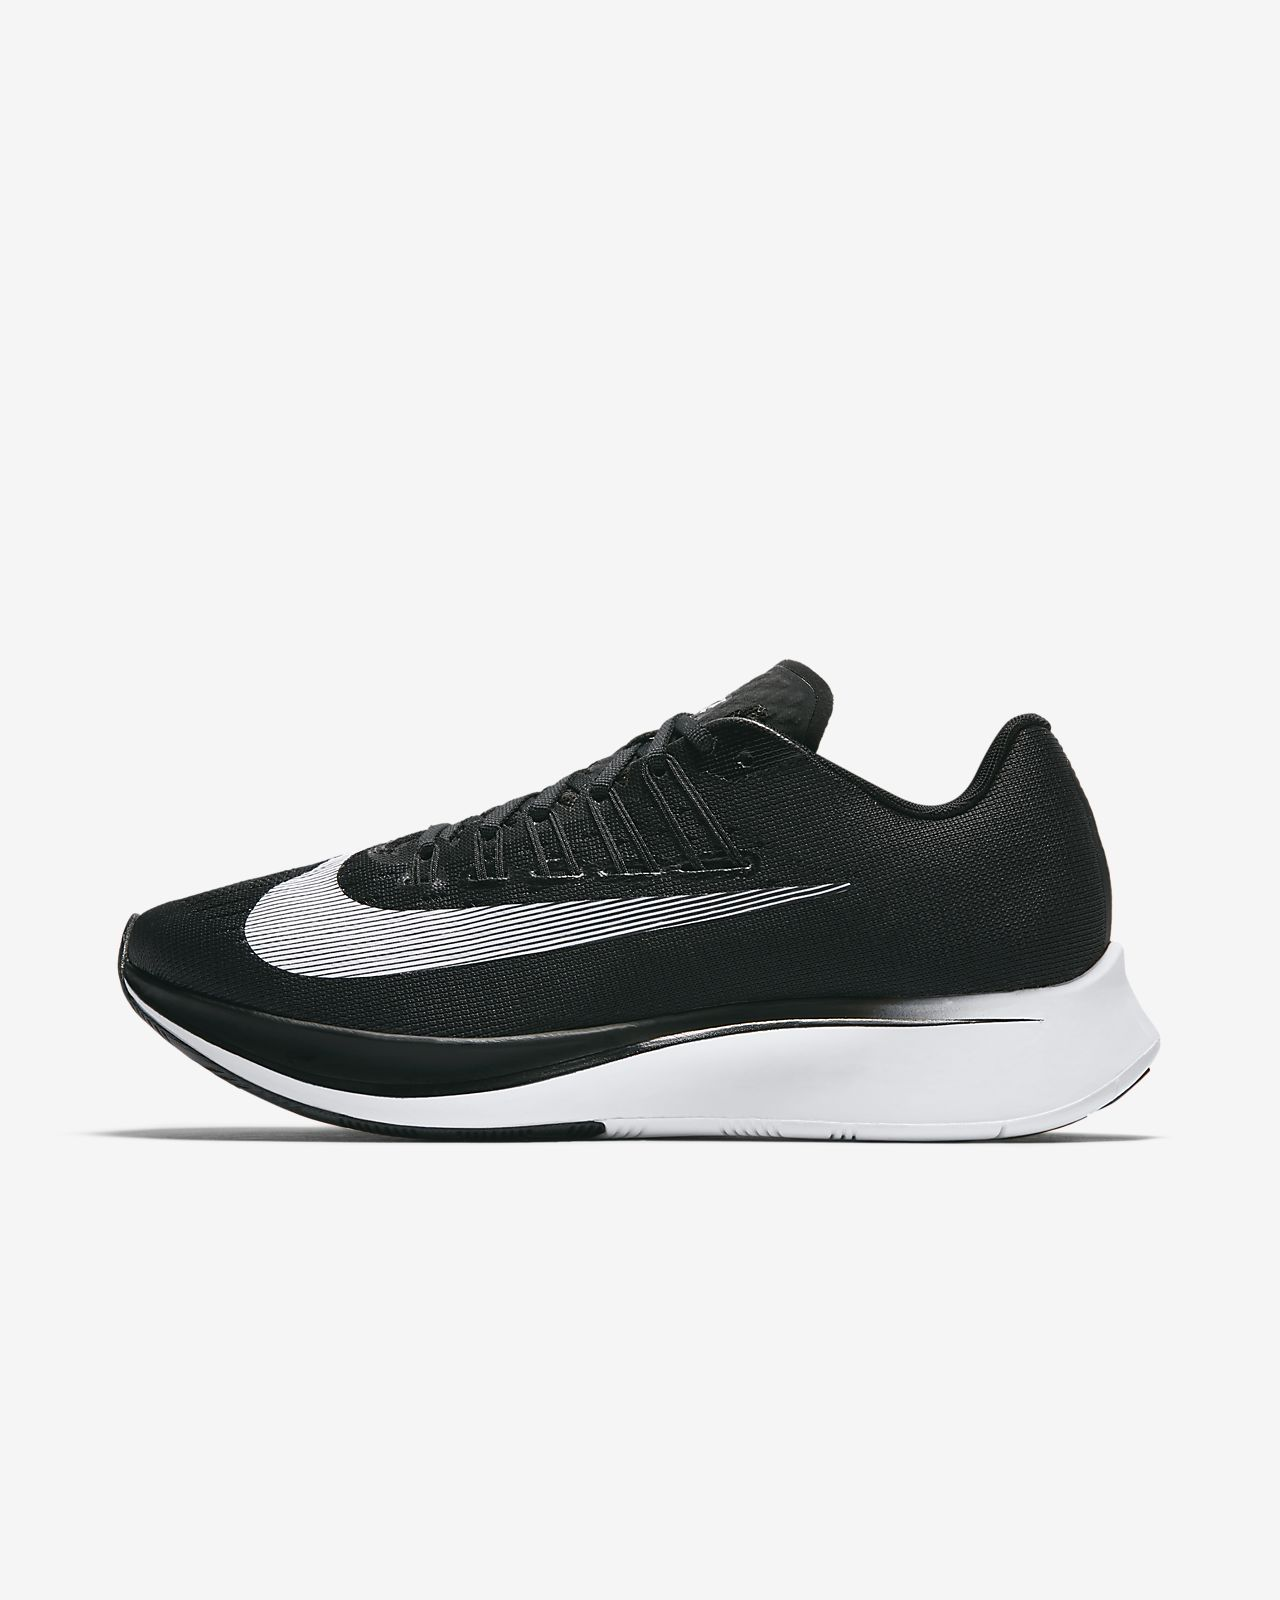 c1a9b8bb86c6 Nike Zoom Fly Women s Running Shoe. Nike.com